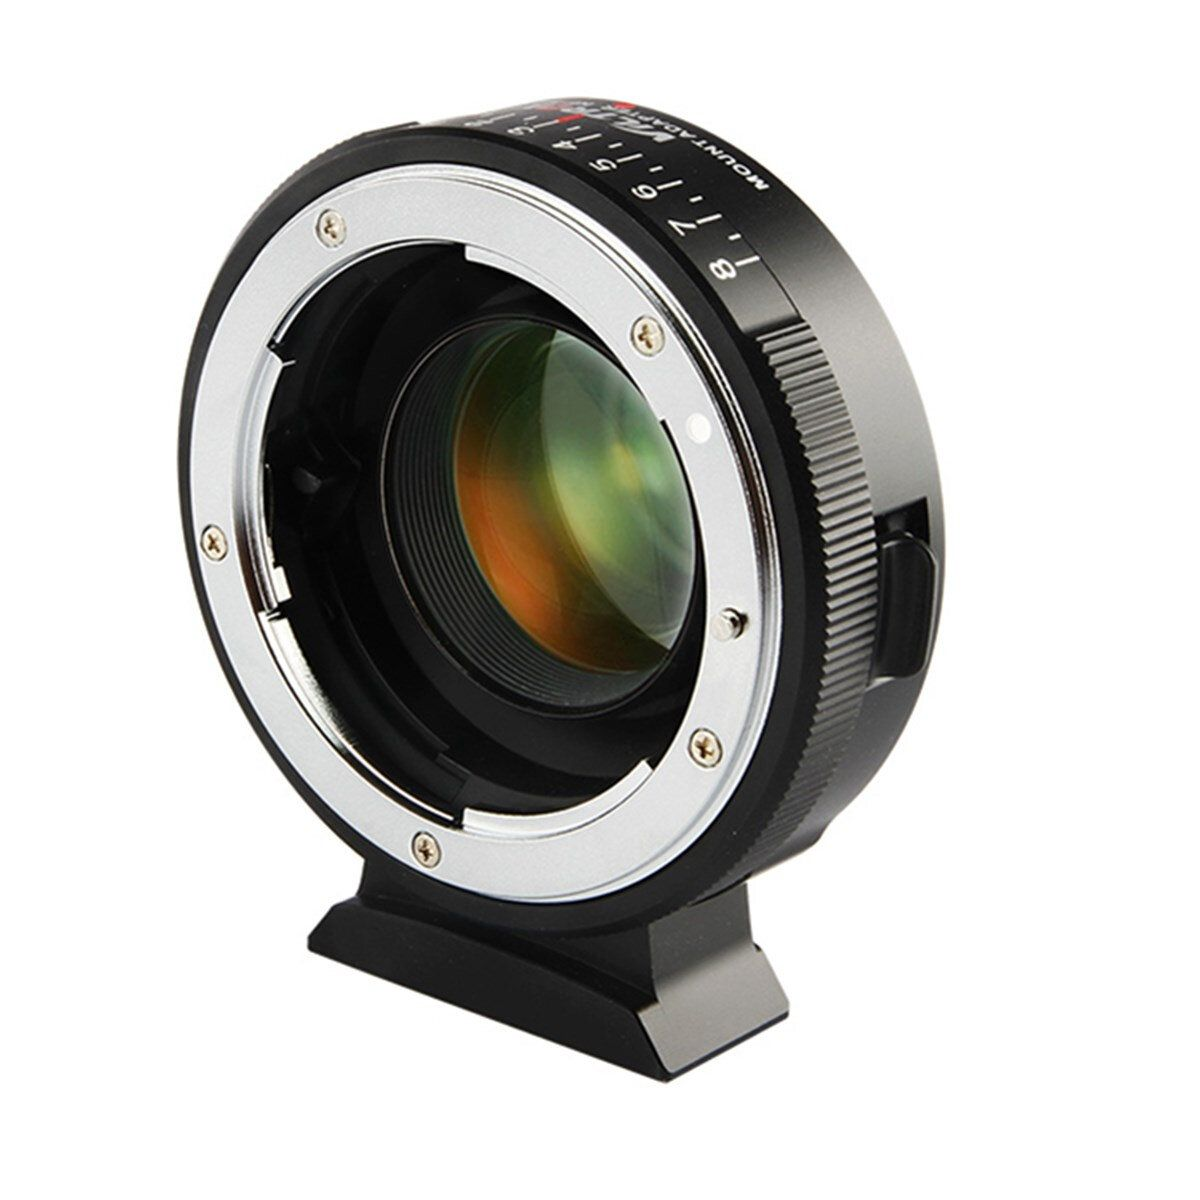 USB US$98.03 Viltrox NF-M43X Focal Reducer Speed Booster Adapter Turbo with Aperture for Nikon Lens to M4/3 Camera GH4 GH5GK GH85GK GF7GK GX7